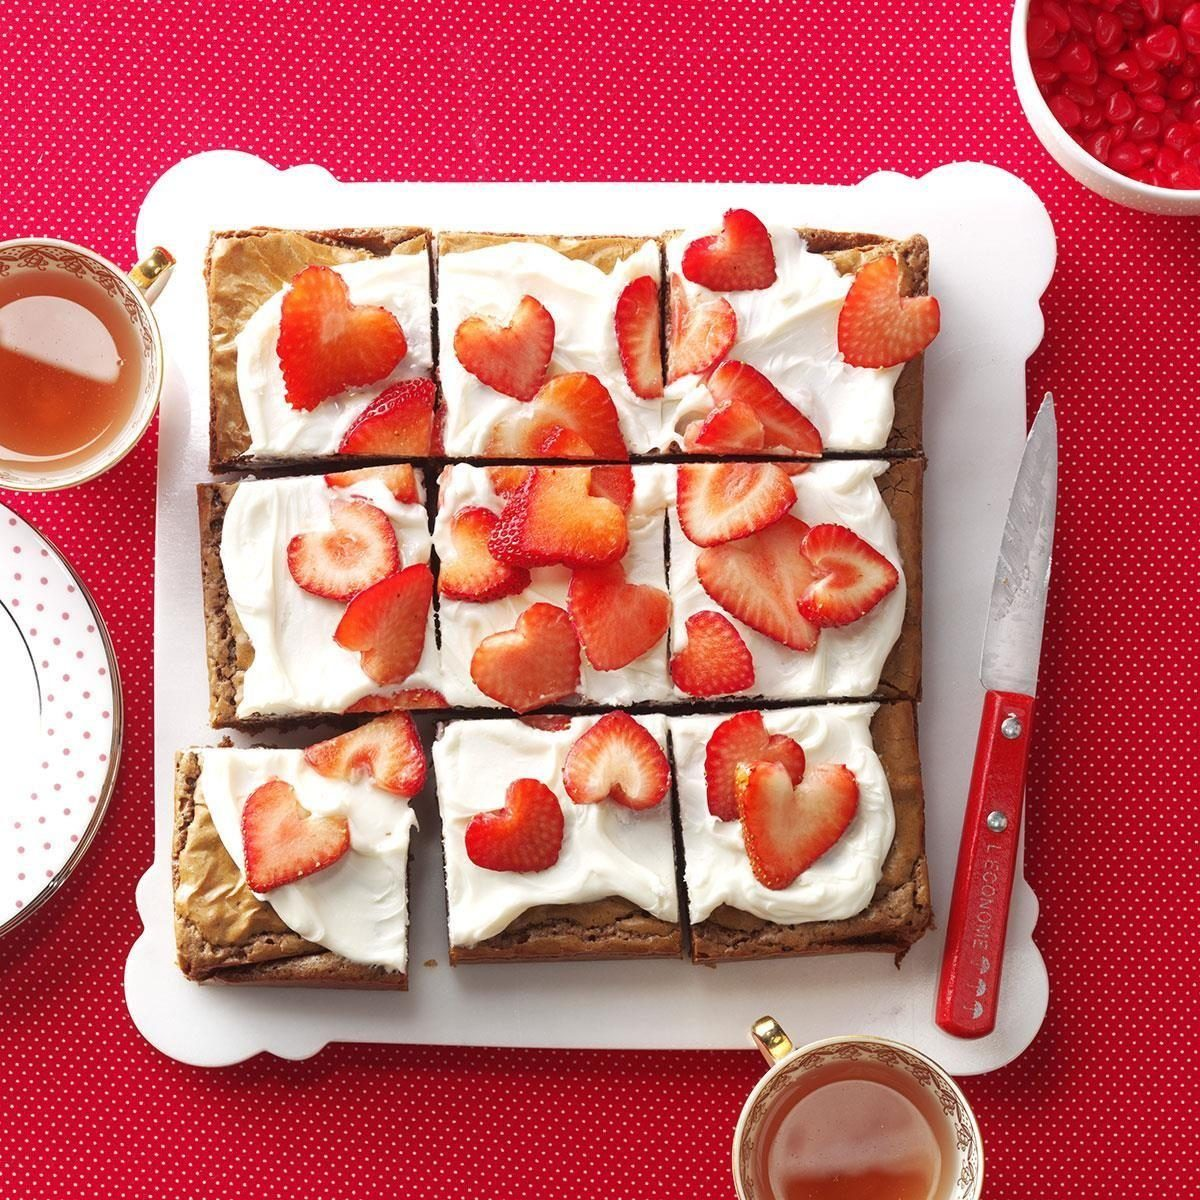 Strawberry Heart Brownies